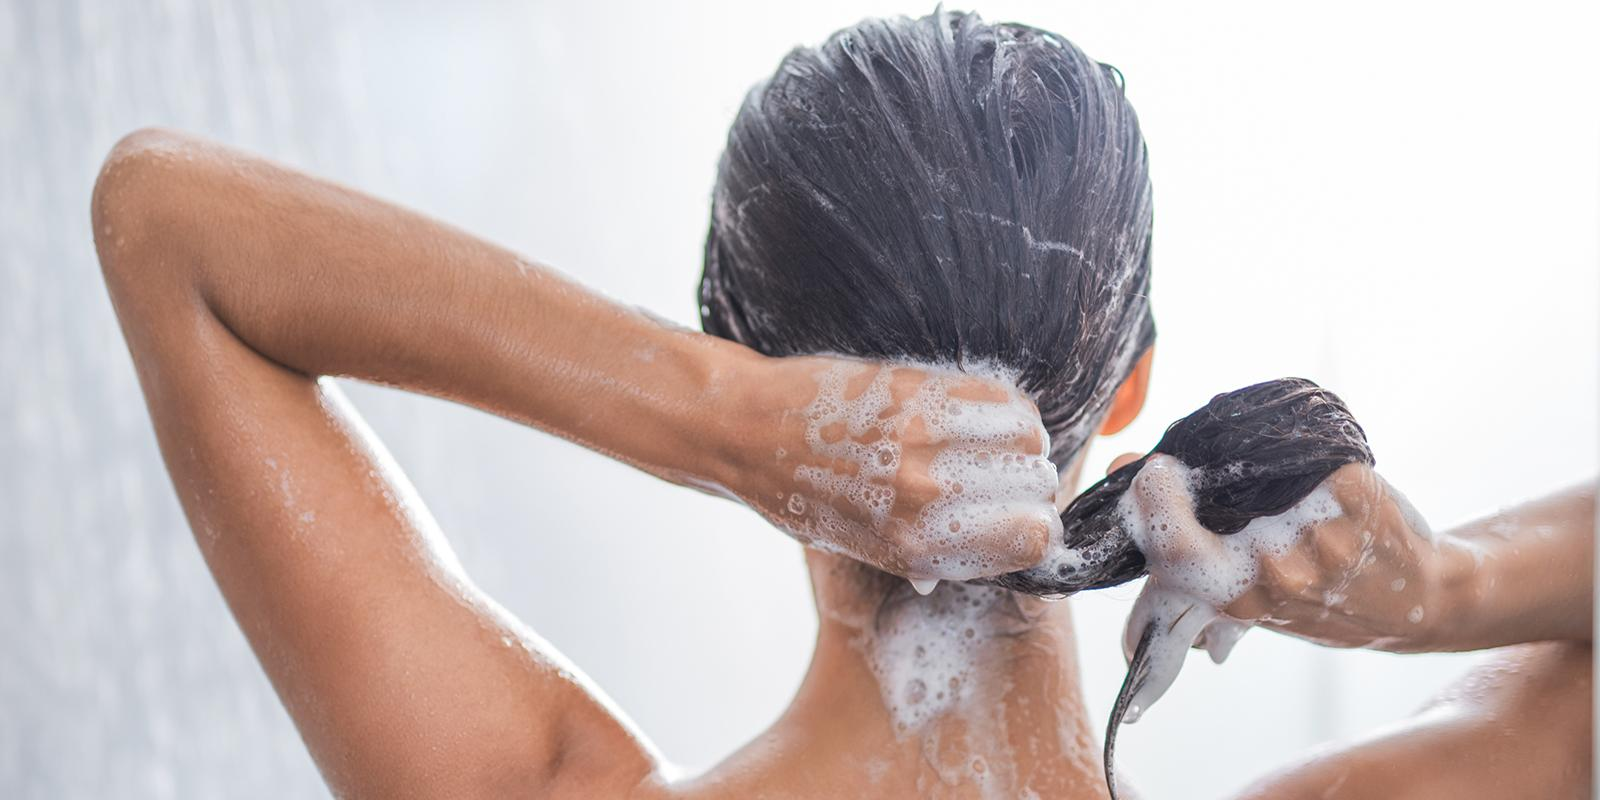 Woman with brunette hair Shampooing her hair